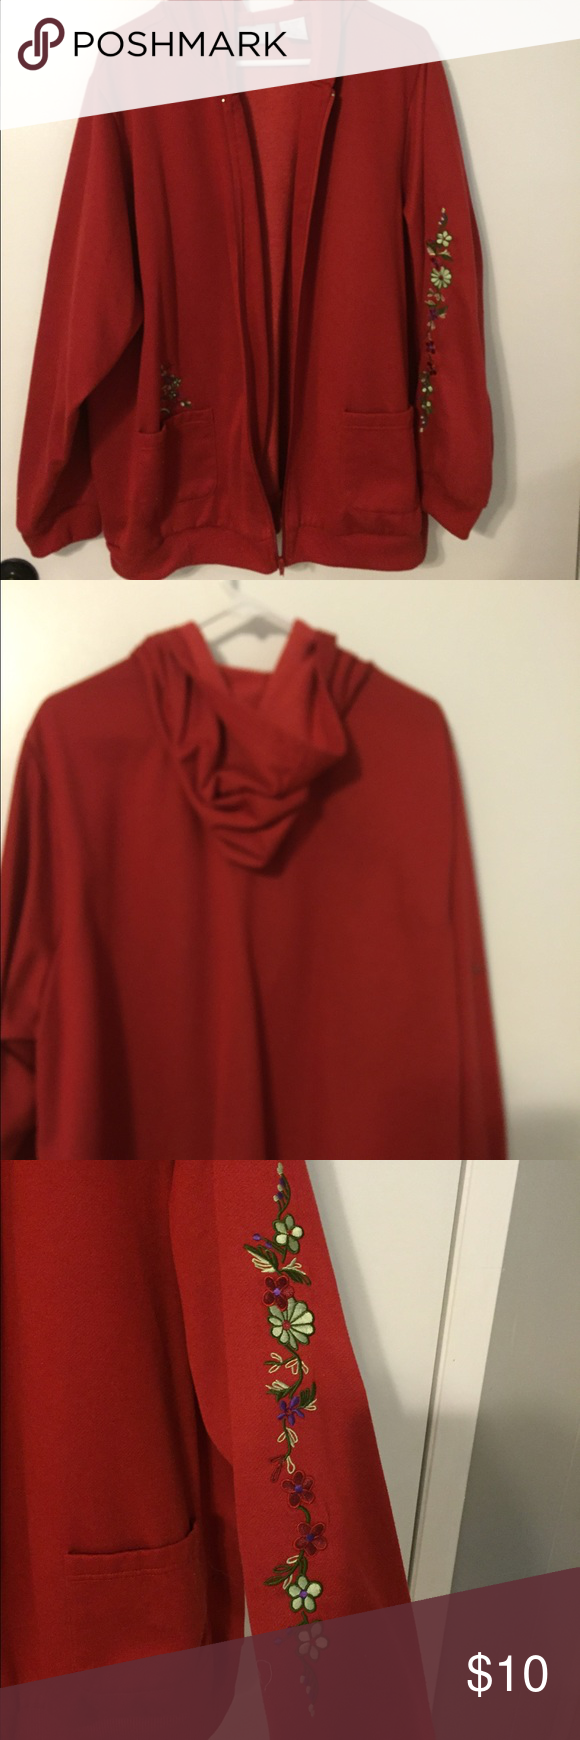 Red fleece hooded zip front coat with embroidery Red zip front hooded fleece coat with 2 pockets, embroidered flower details on left sleeve and right pocket. Beautiful Blair Jackets & Coats